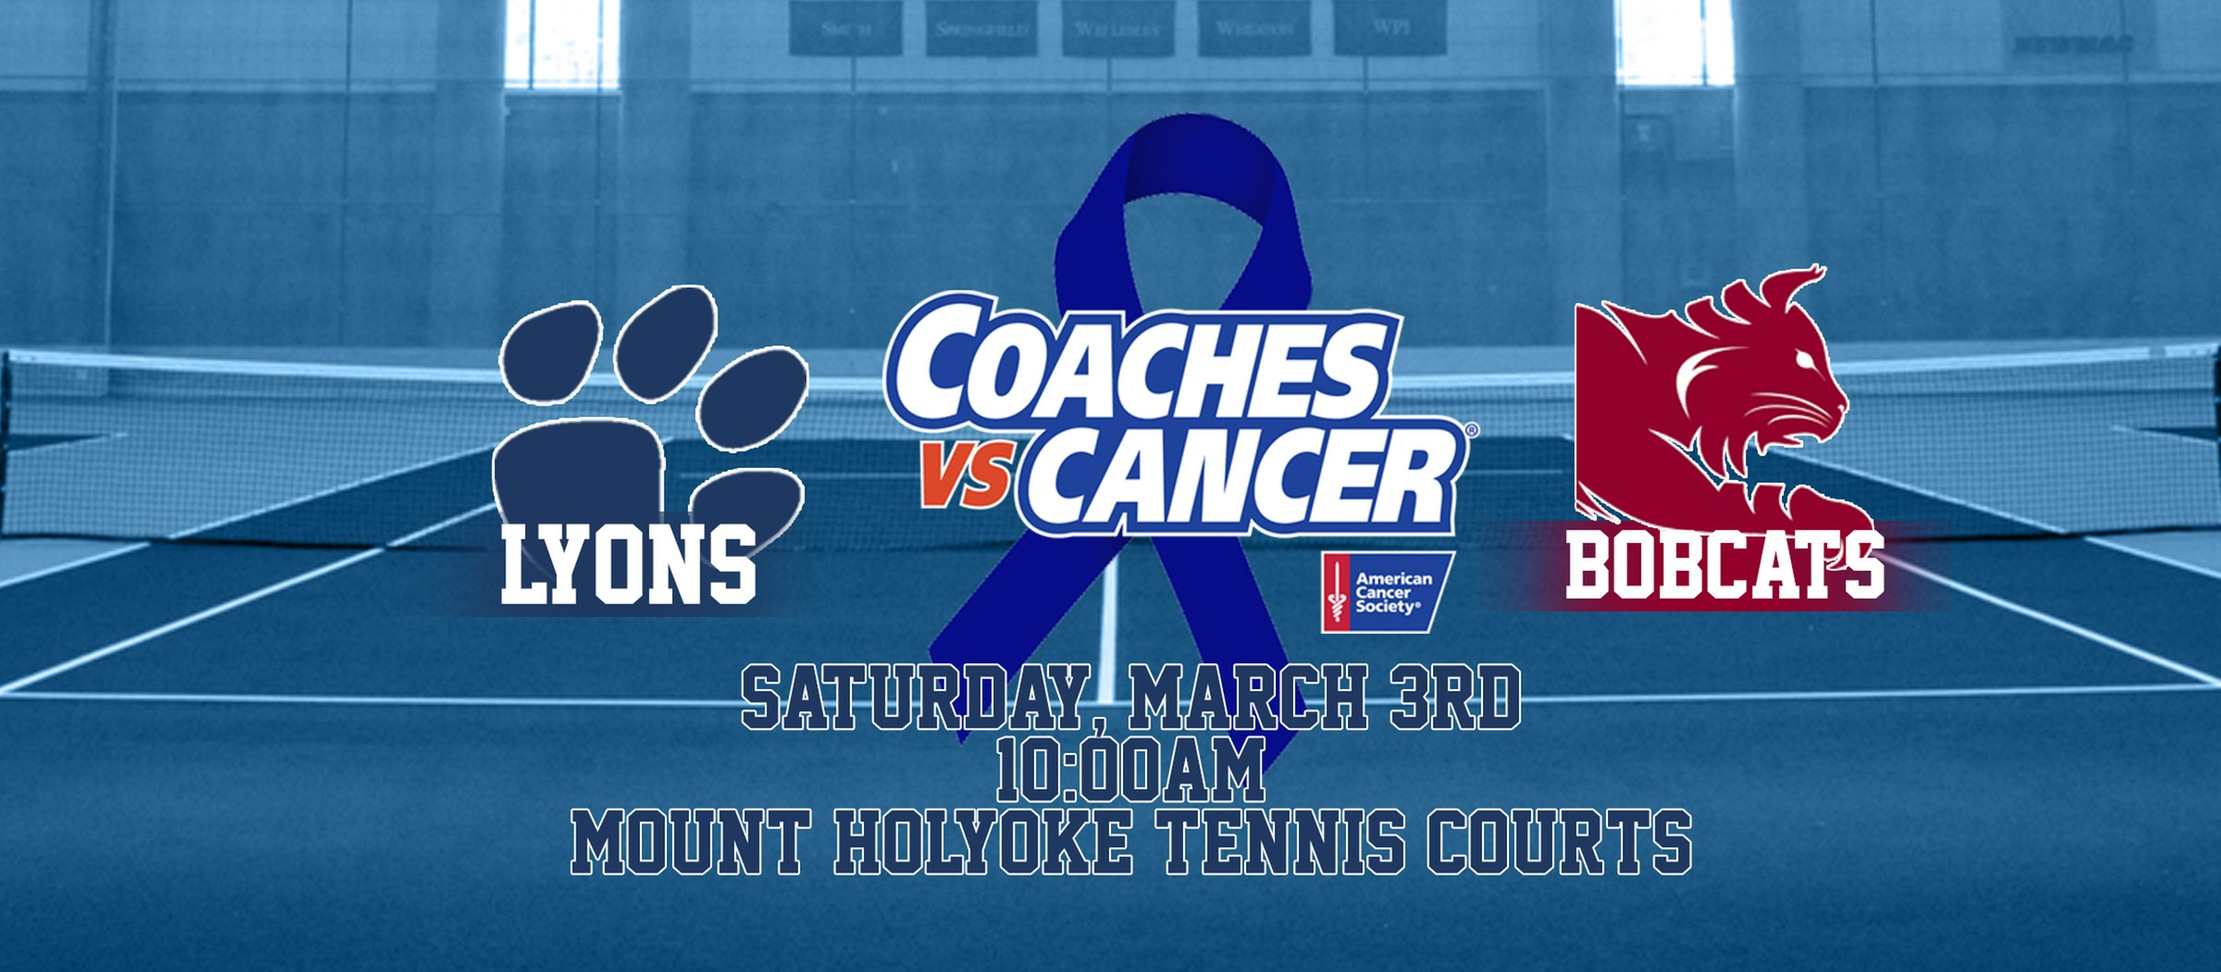 Coaches vs Cancer gameday central graphic for tennis.